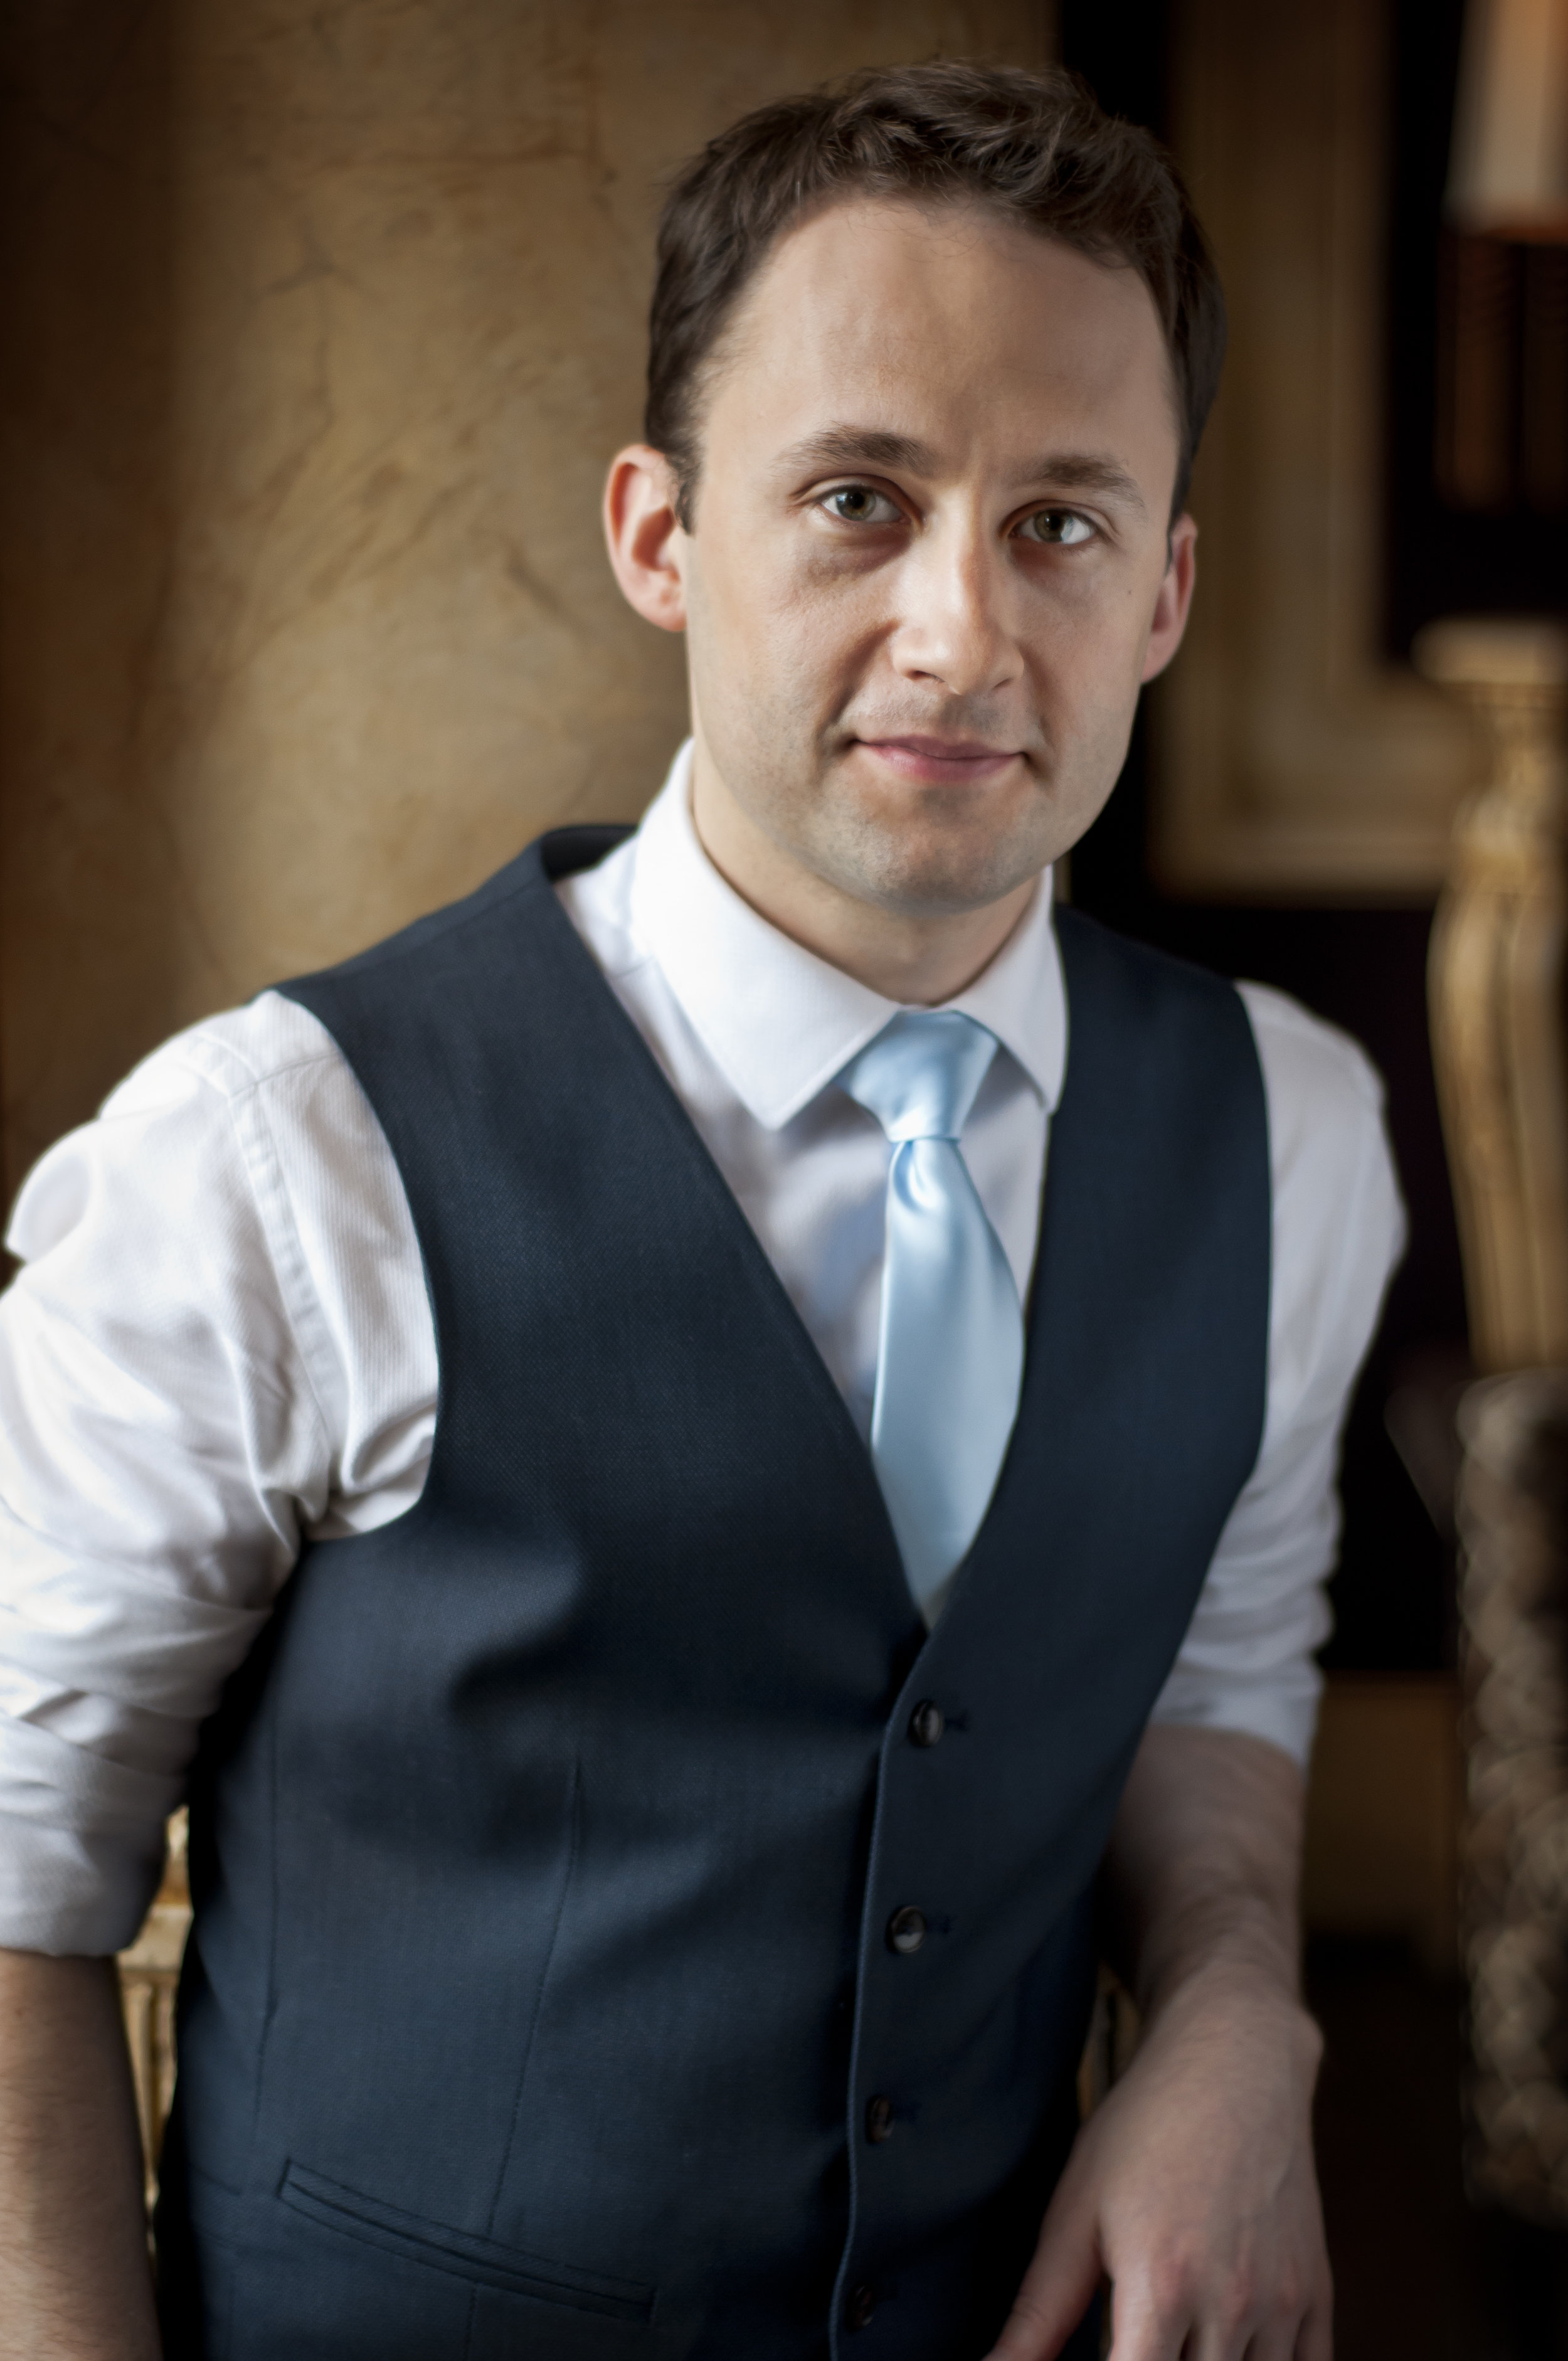 "- Special guest soloist Alexandre Moutouzkine will join Loh and the WVSO in performing Gershwin's Piano Concerto in F, a piece that strengthened Gershwin's reputation as a composer who straddled the boundaries of popular and ""serious"" music."